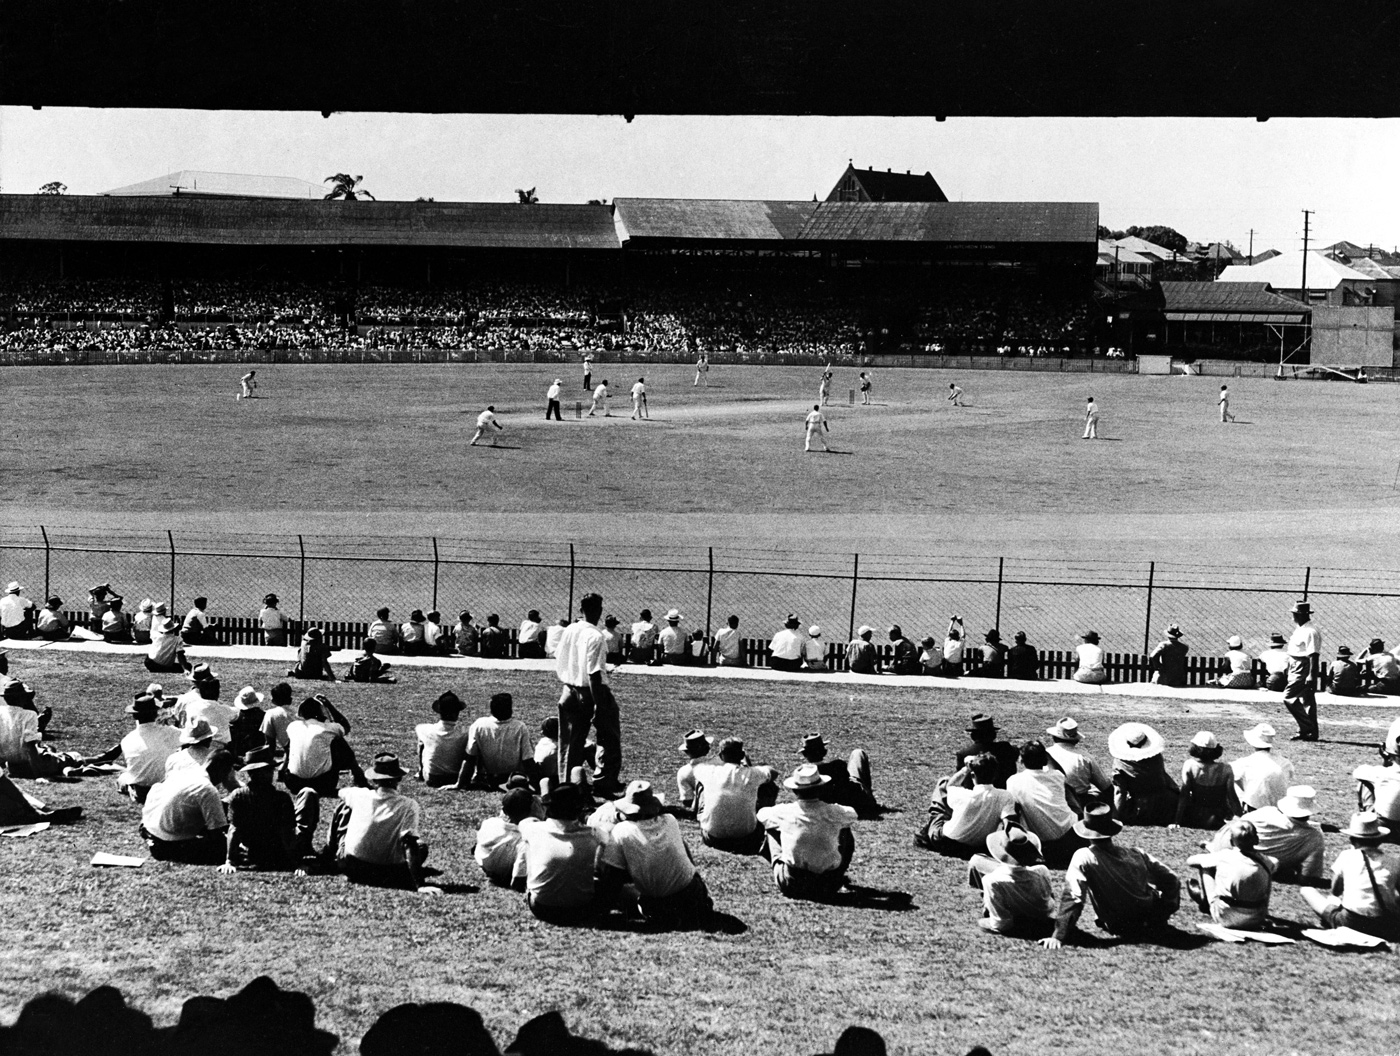 A view of the Gabba during a tour game in 1962